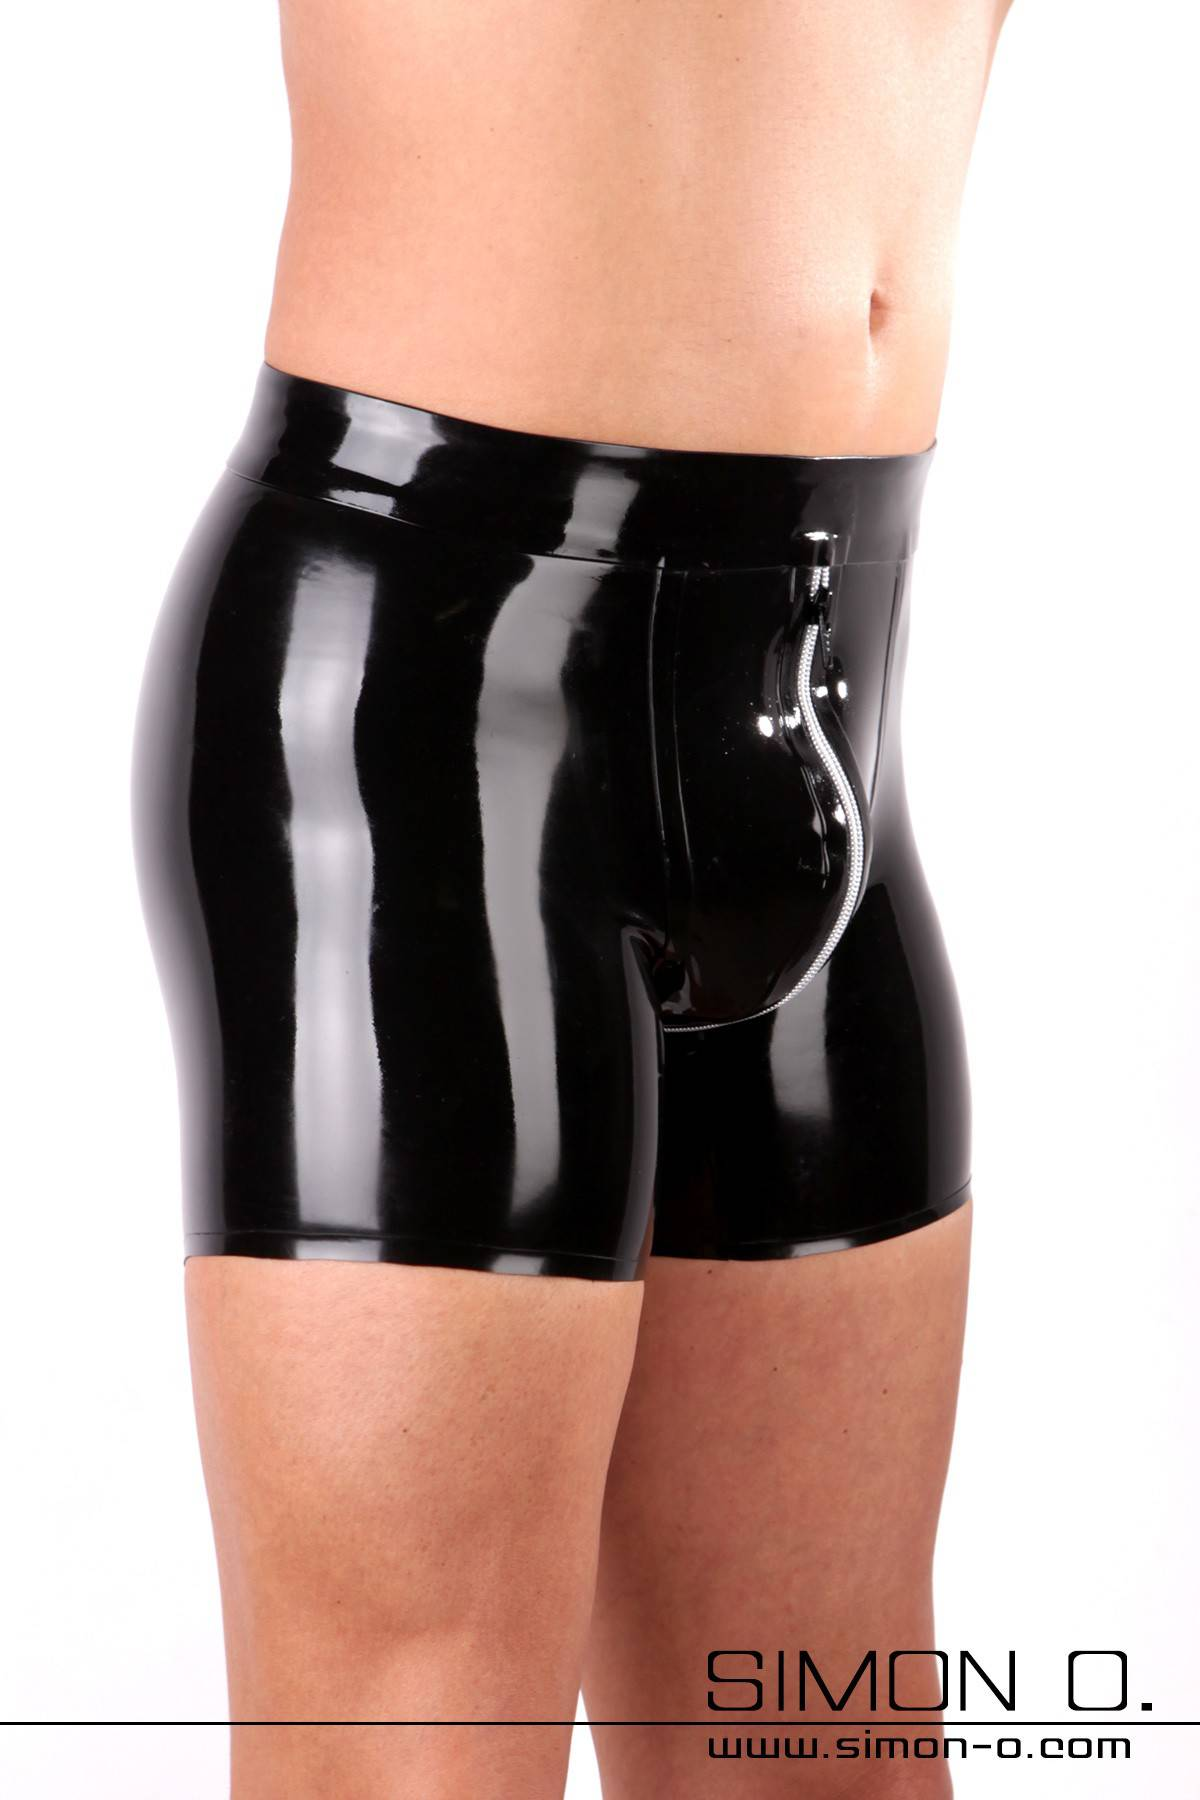 Men's Latex Shorts with Zipper in Silver Men's latex shorts with longer leg attachment for even more latex feel and wear comfort. Sophisticated cut with …